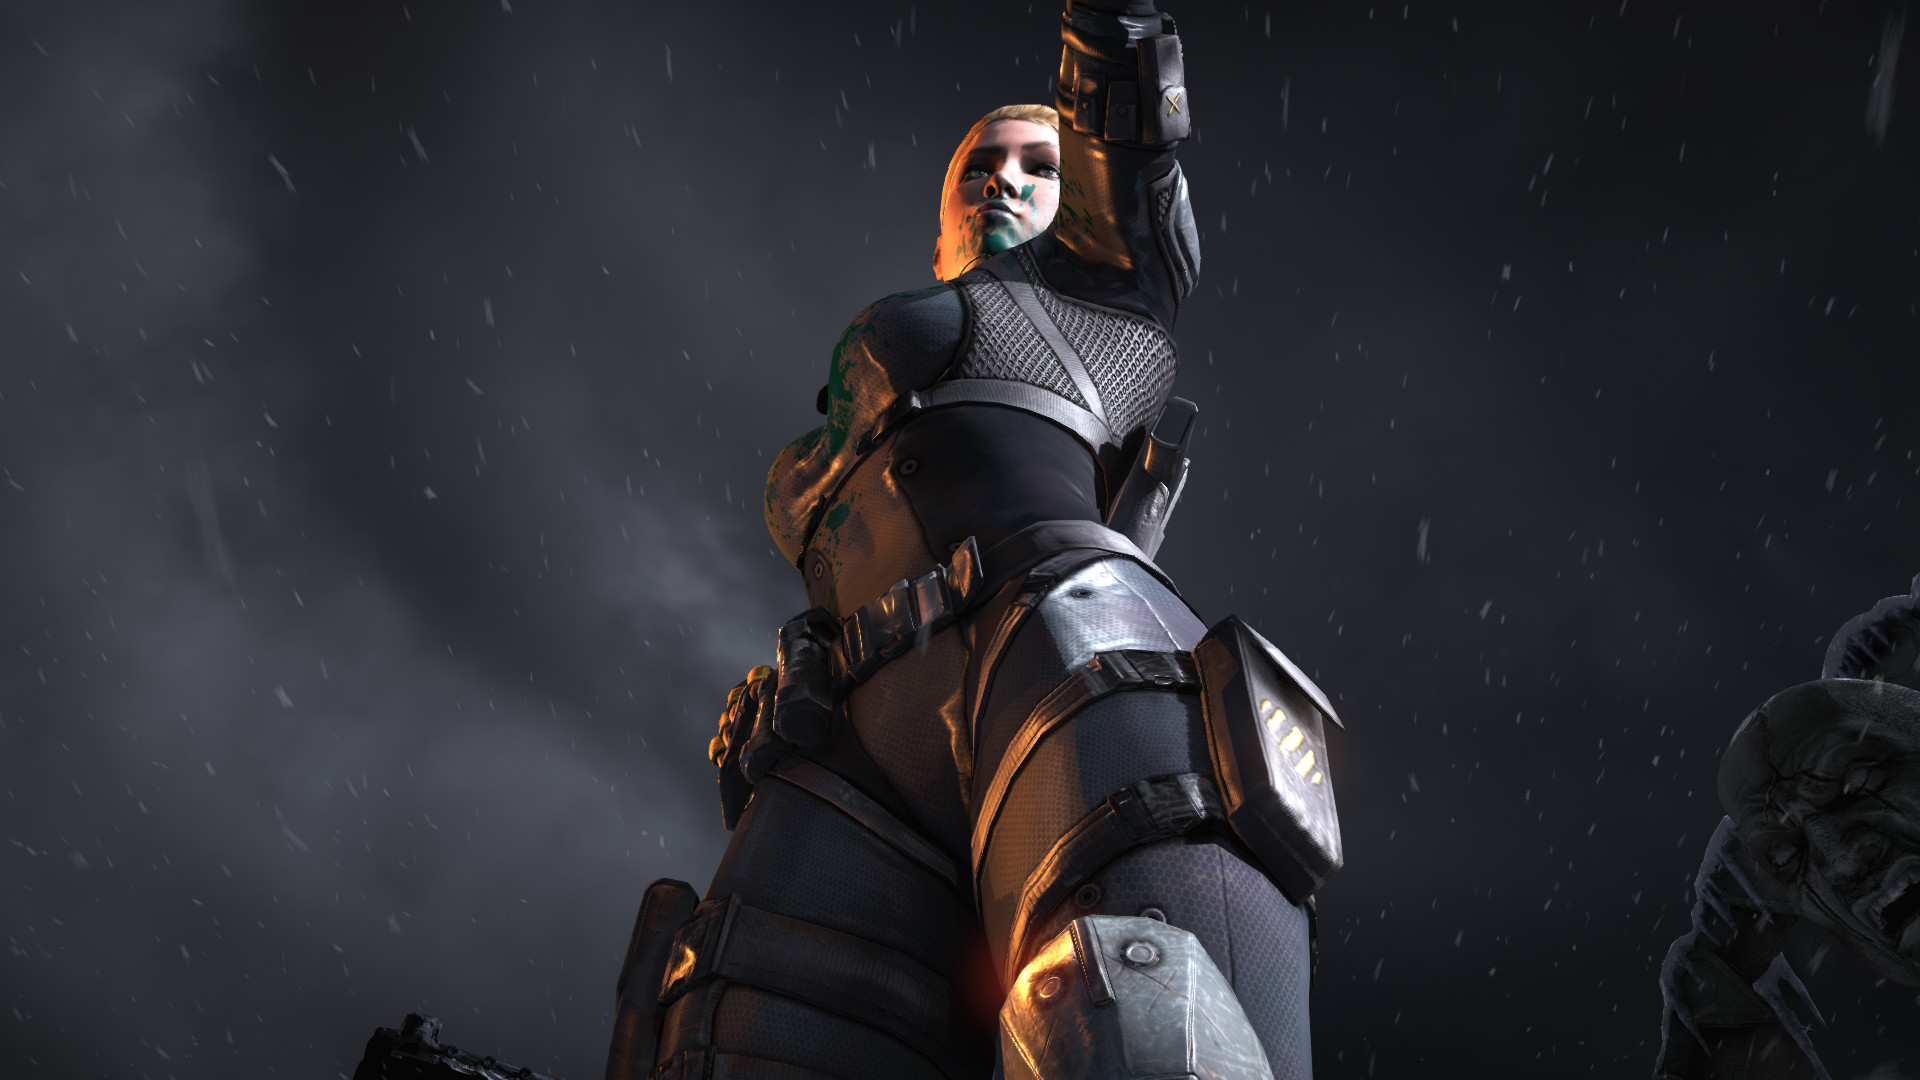 29 Hot Pictures Of Cassie Cage From Mortal Kombat